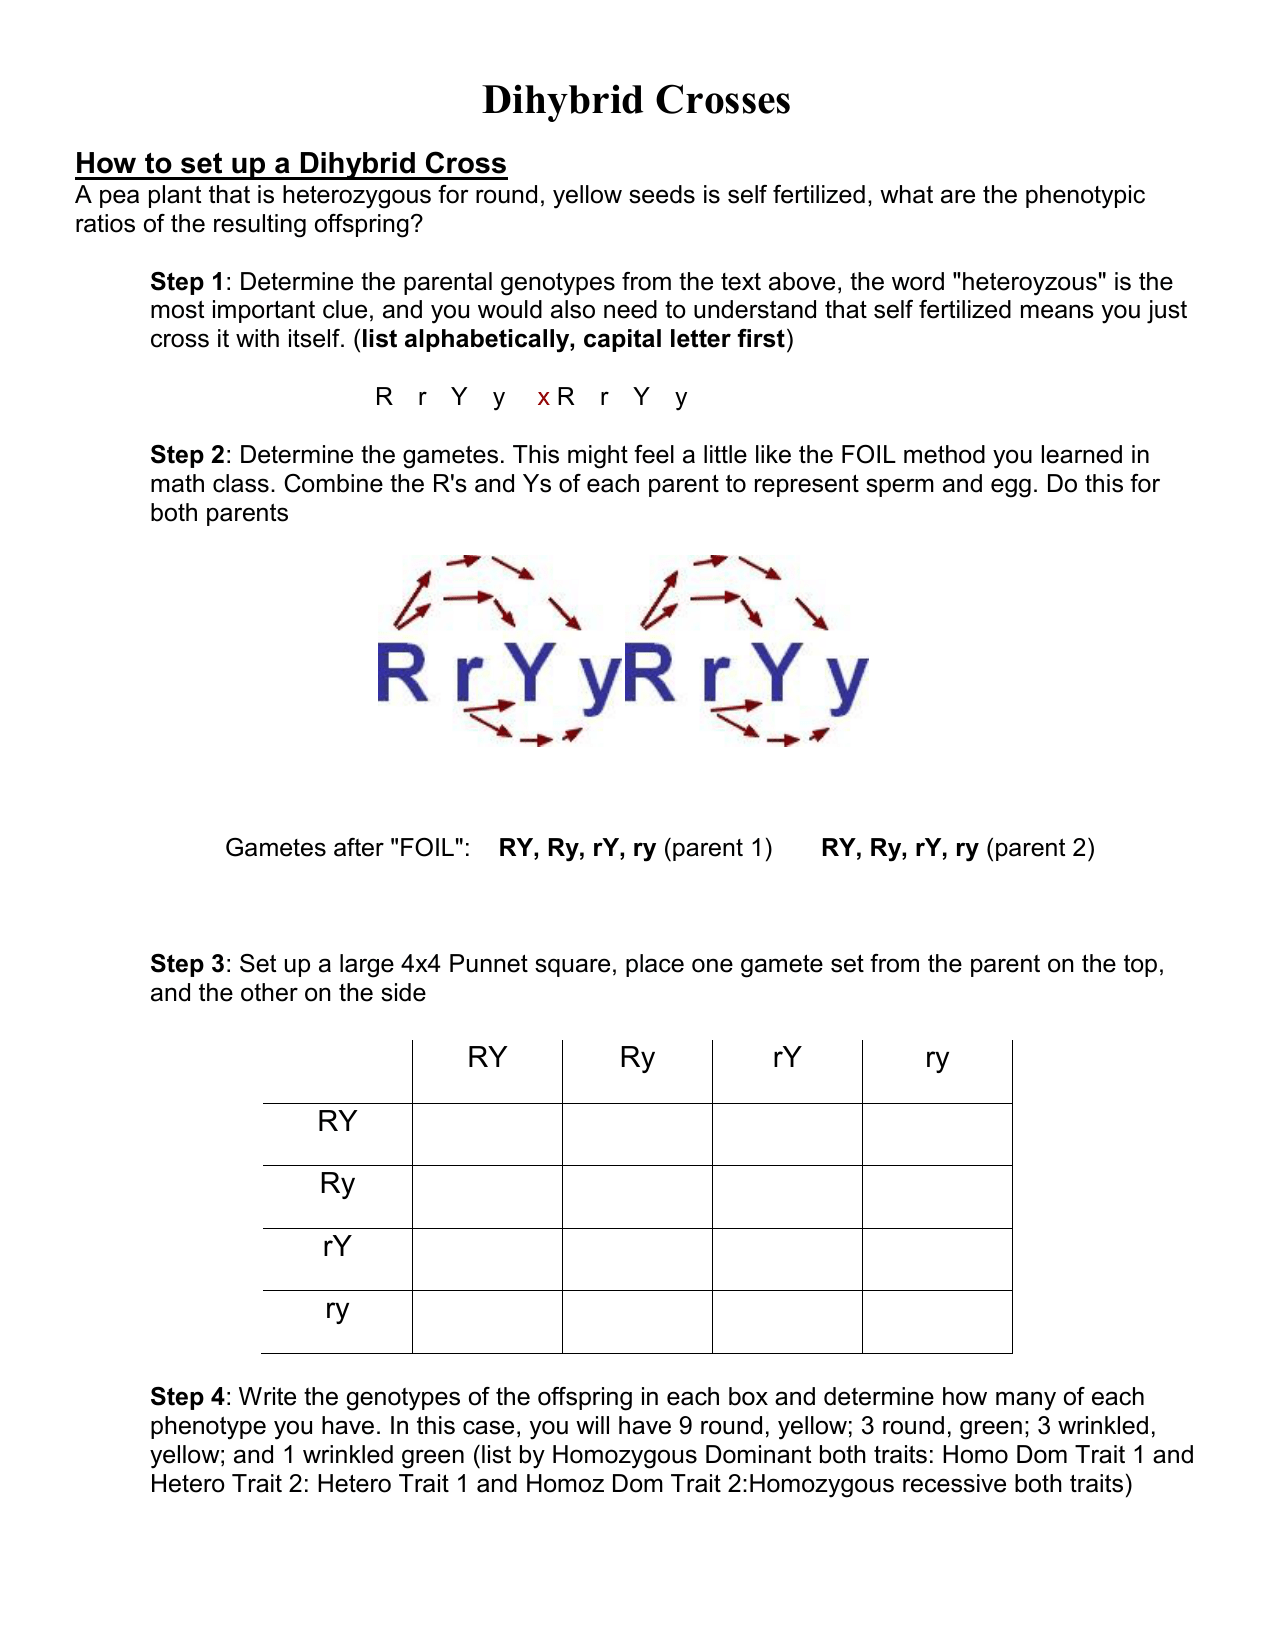 Worksheet Dihybrid Crosses Answer Key